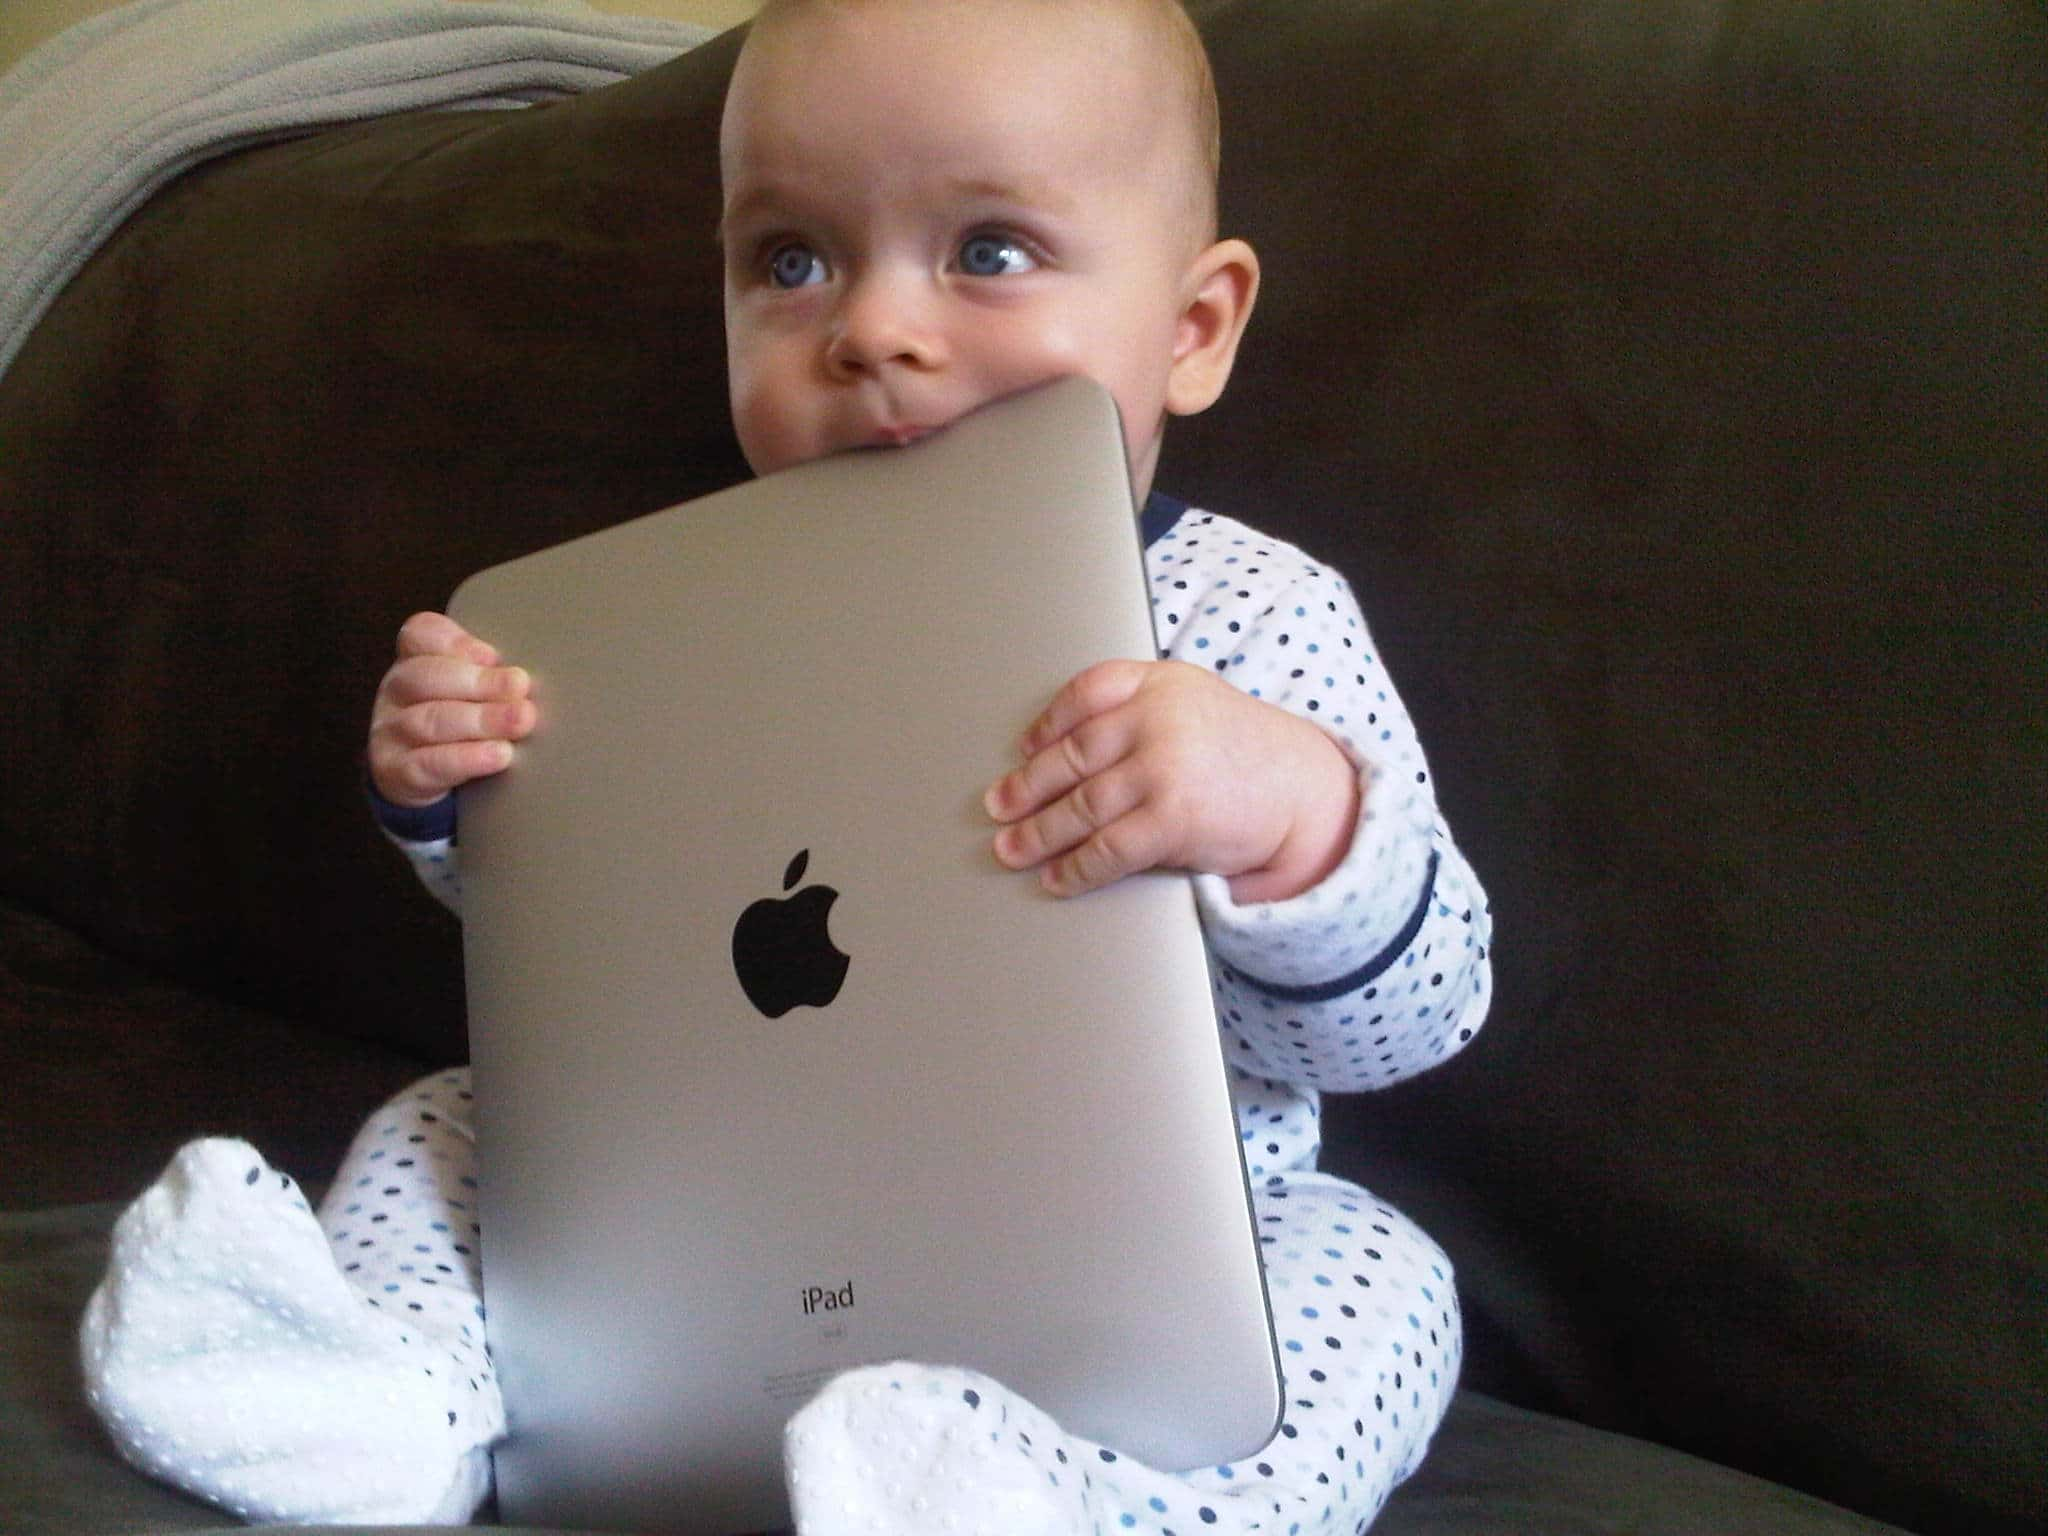 baby-with-ipad